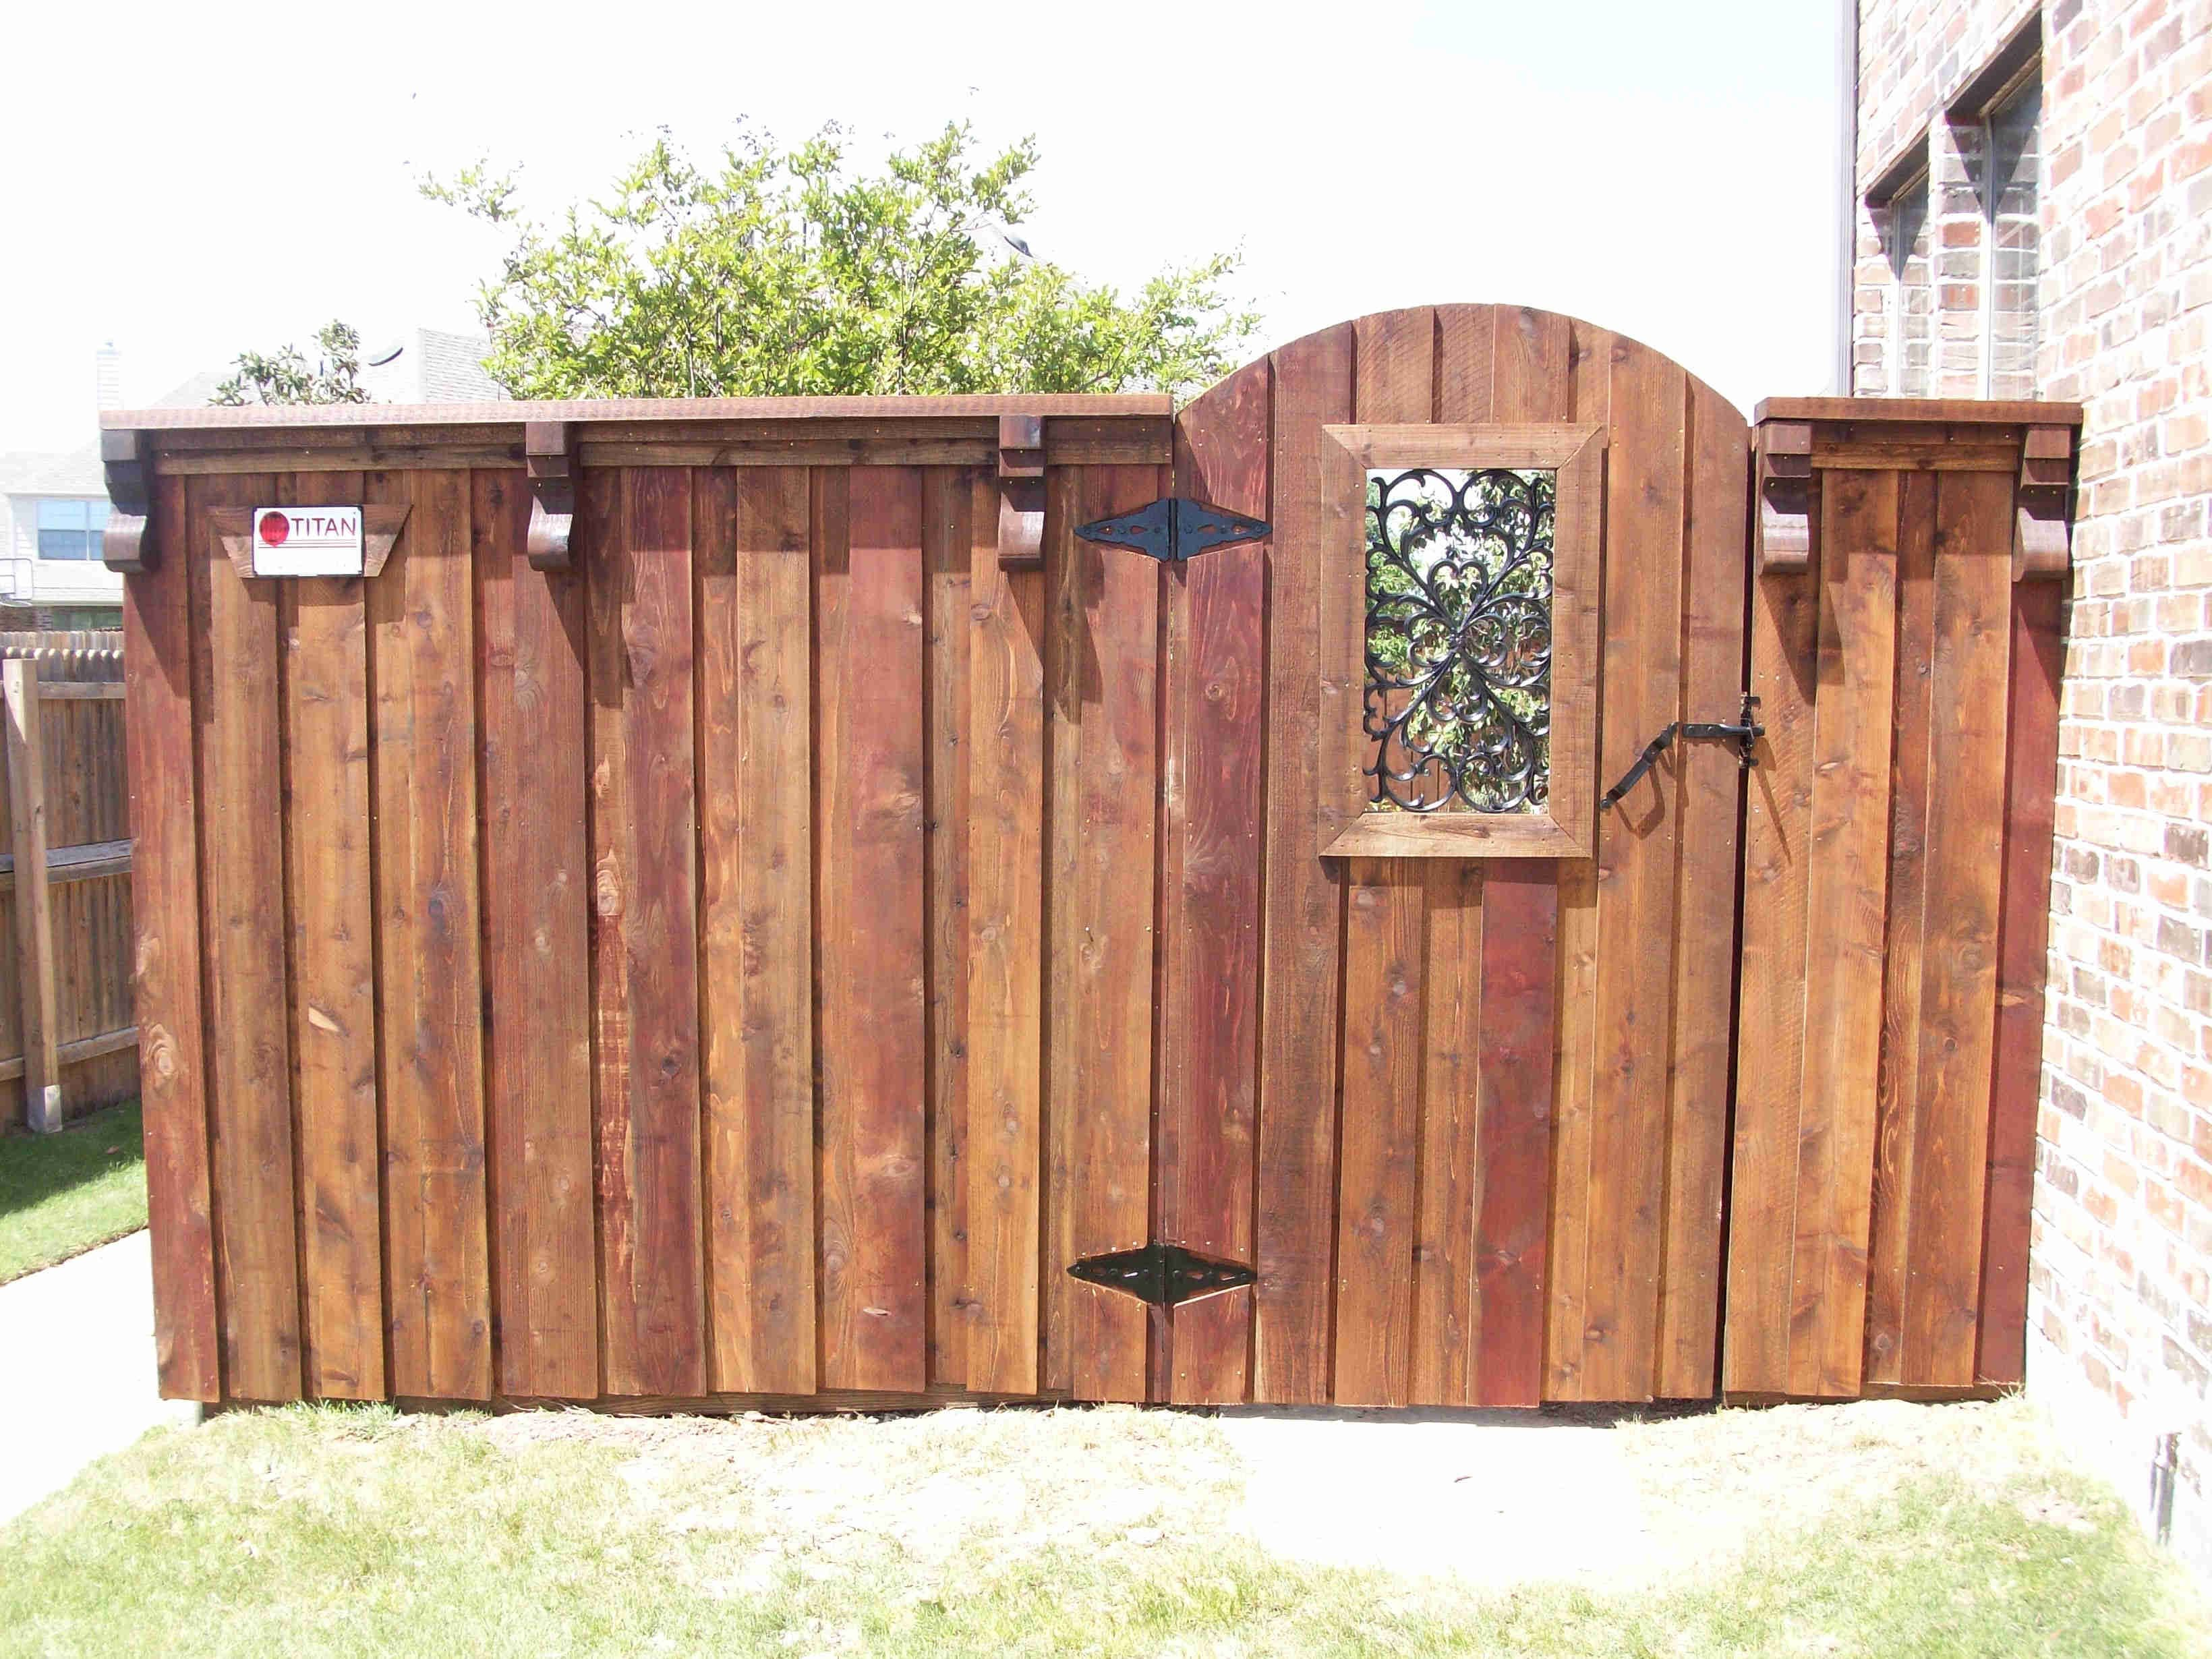 Wood Fencing | Wood fence gates, Privacy fence designs ...